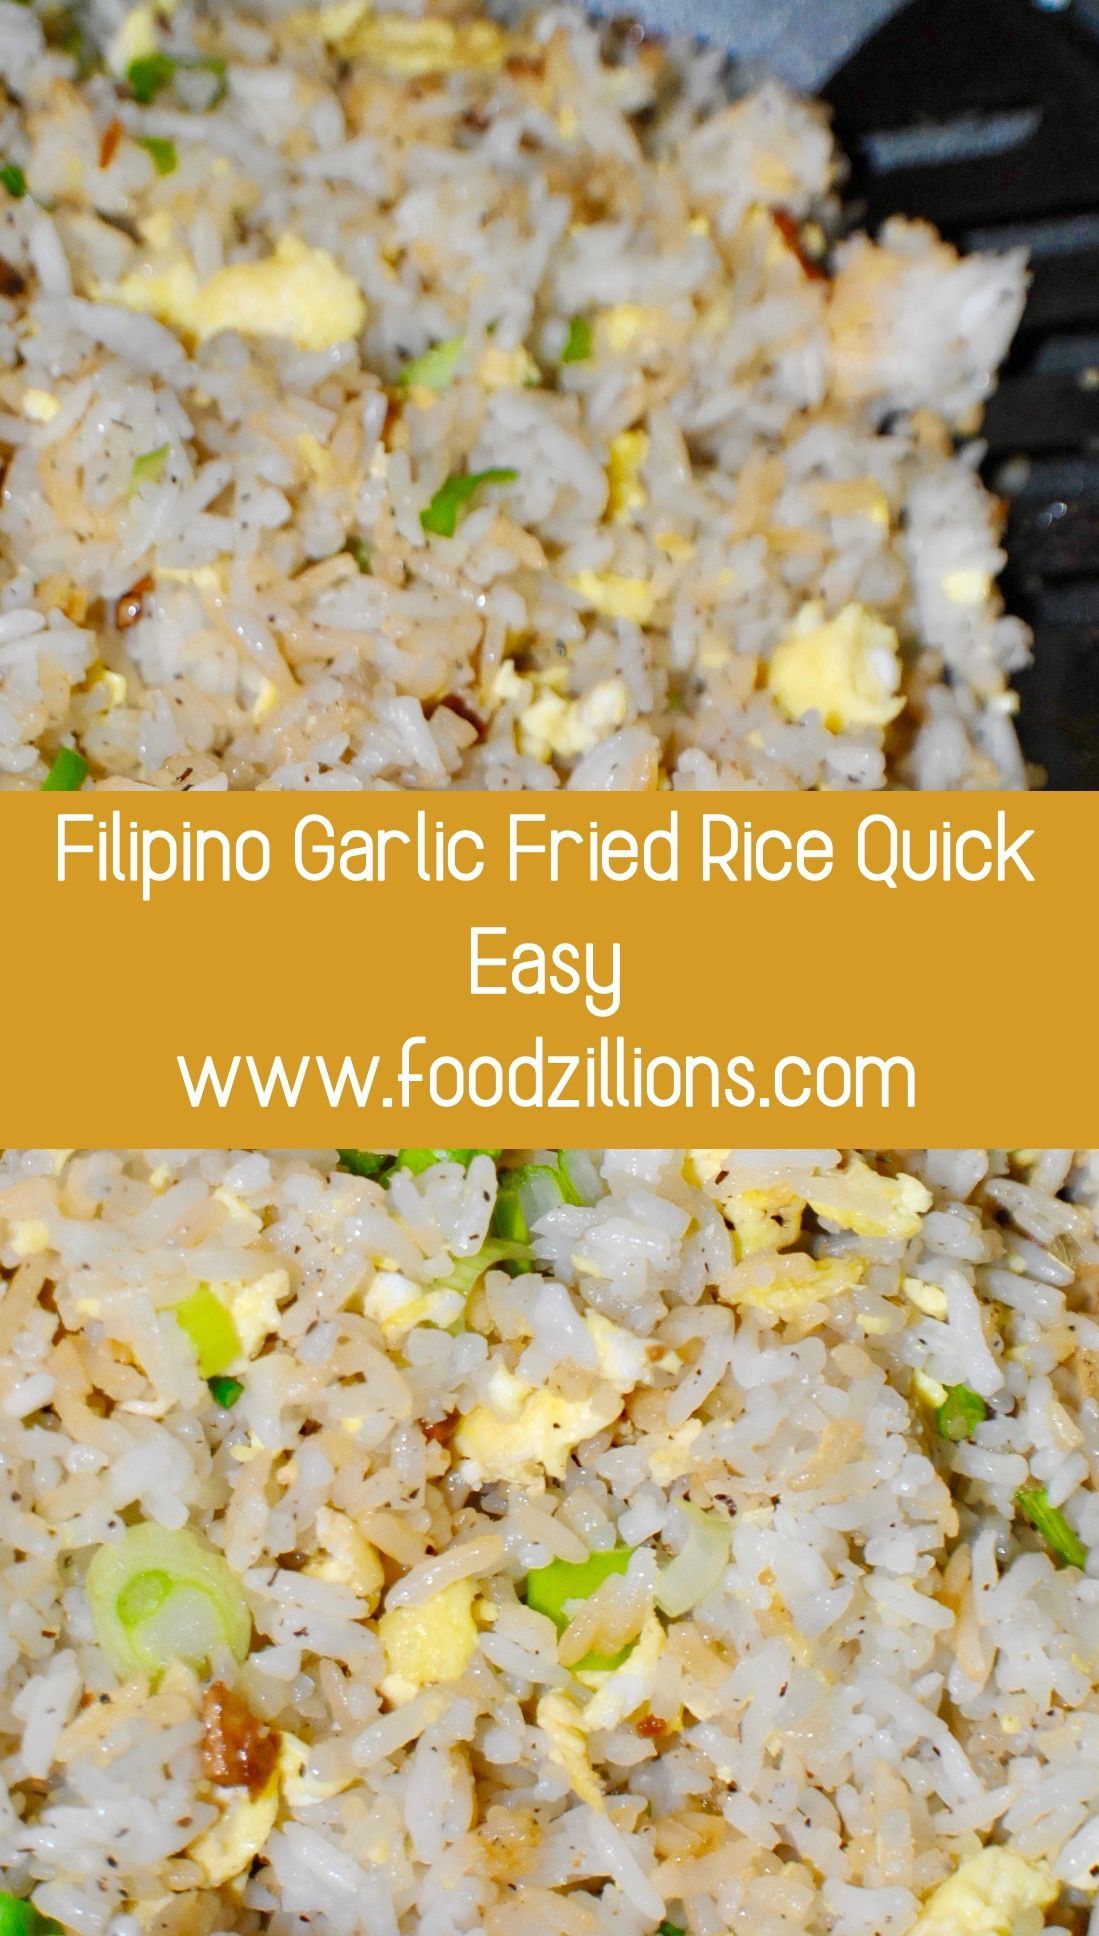 Photo of Filipino Garlic Fried Rice Quick Easy